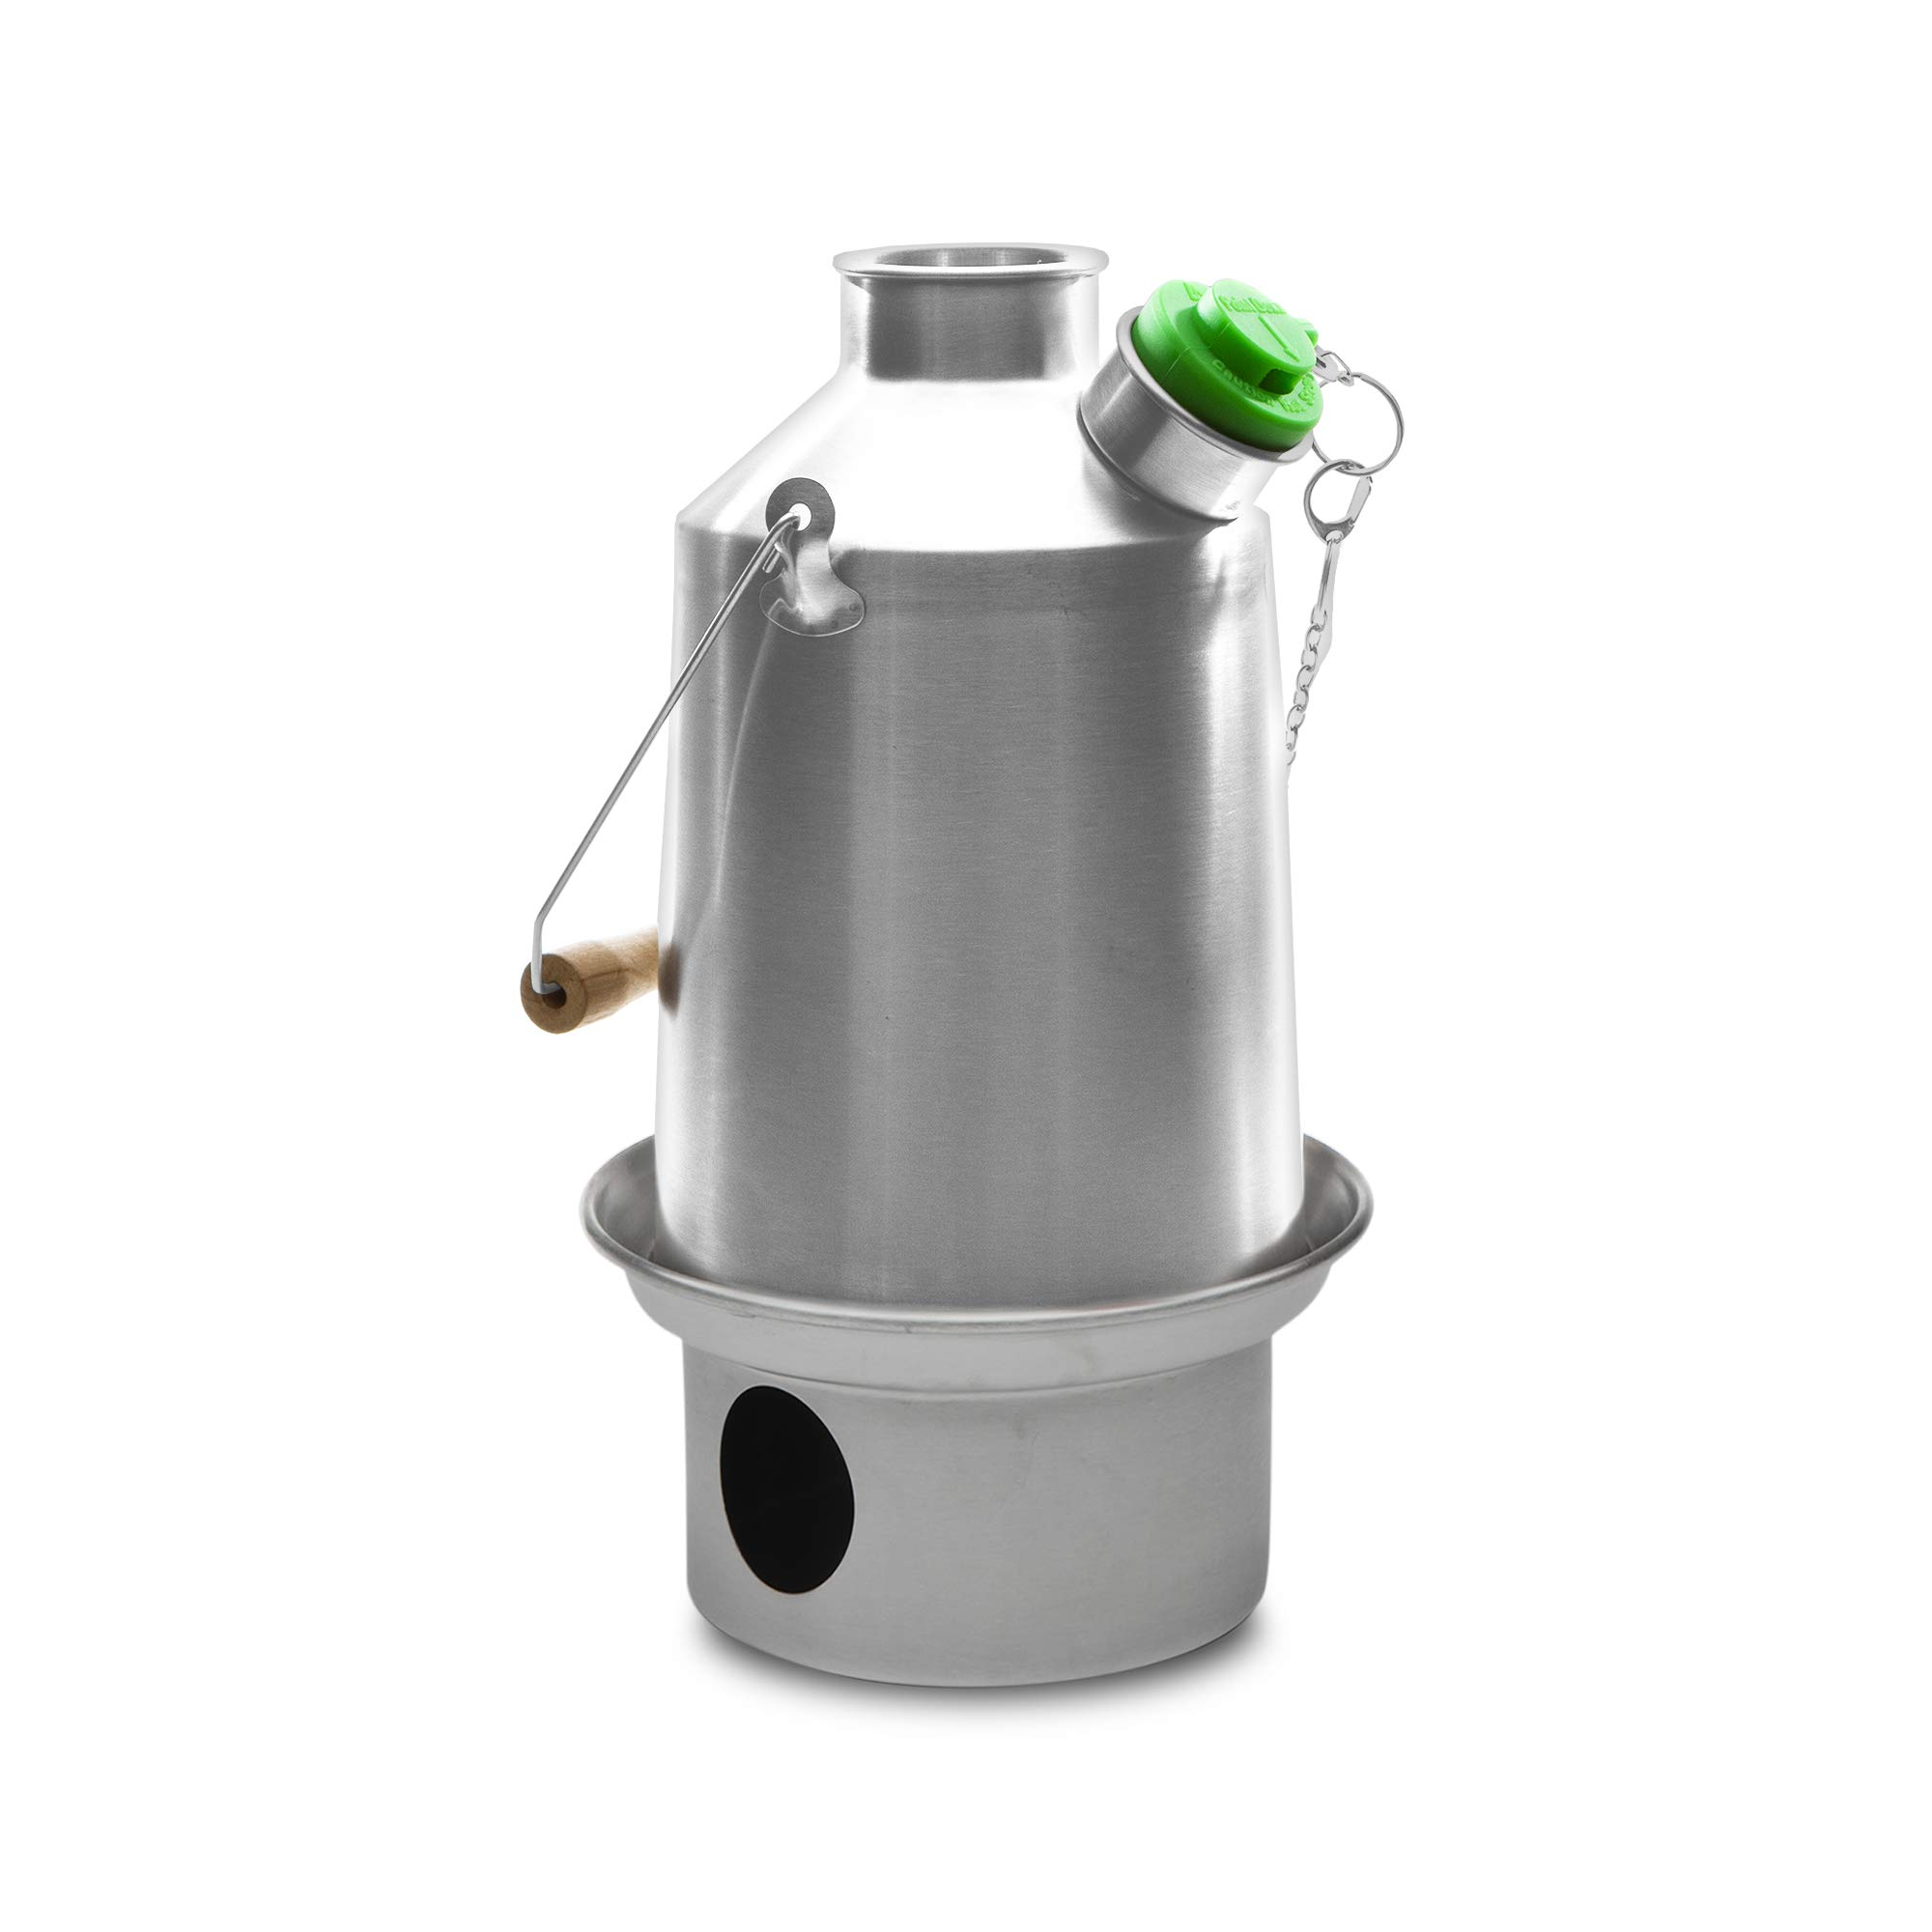 'Base Camp' Kelly Kettle® 1.6 ltr (Stainless Steel) Green Whistle sounds when boiled. Camping Kettle and Camp Stove in one. Ultra fast, lightweight, wood fuelled stove. NO Batteries, NO Gas, FREE Fuel! Perfect for Outdoors, Fishing, Camping, Scouting, Groups, Emergency Preparedness. Weight 2.55lb / 1.16kg